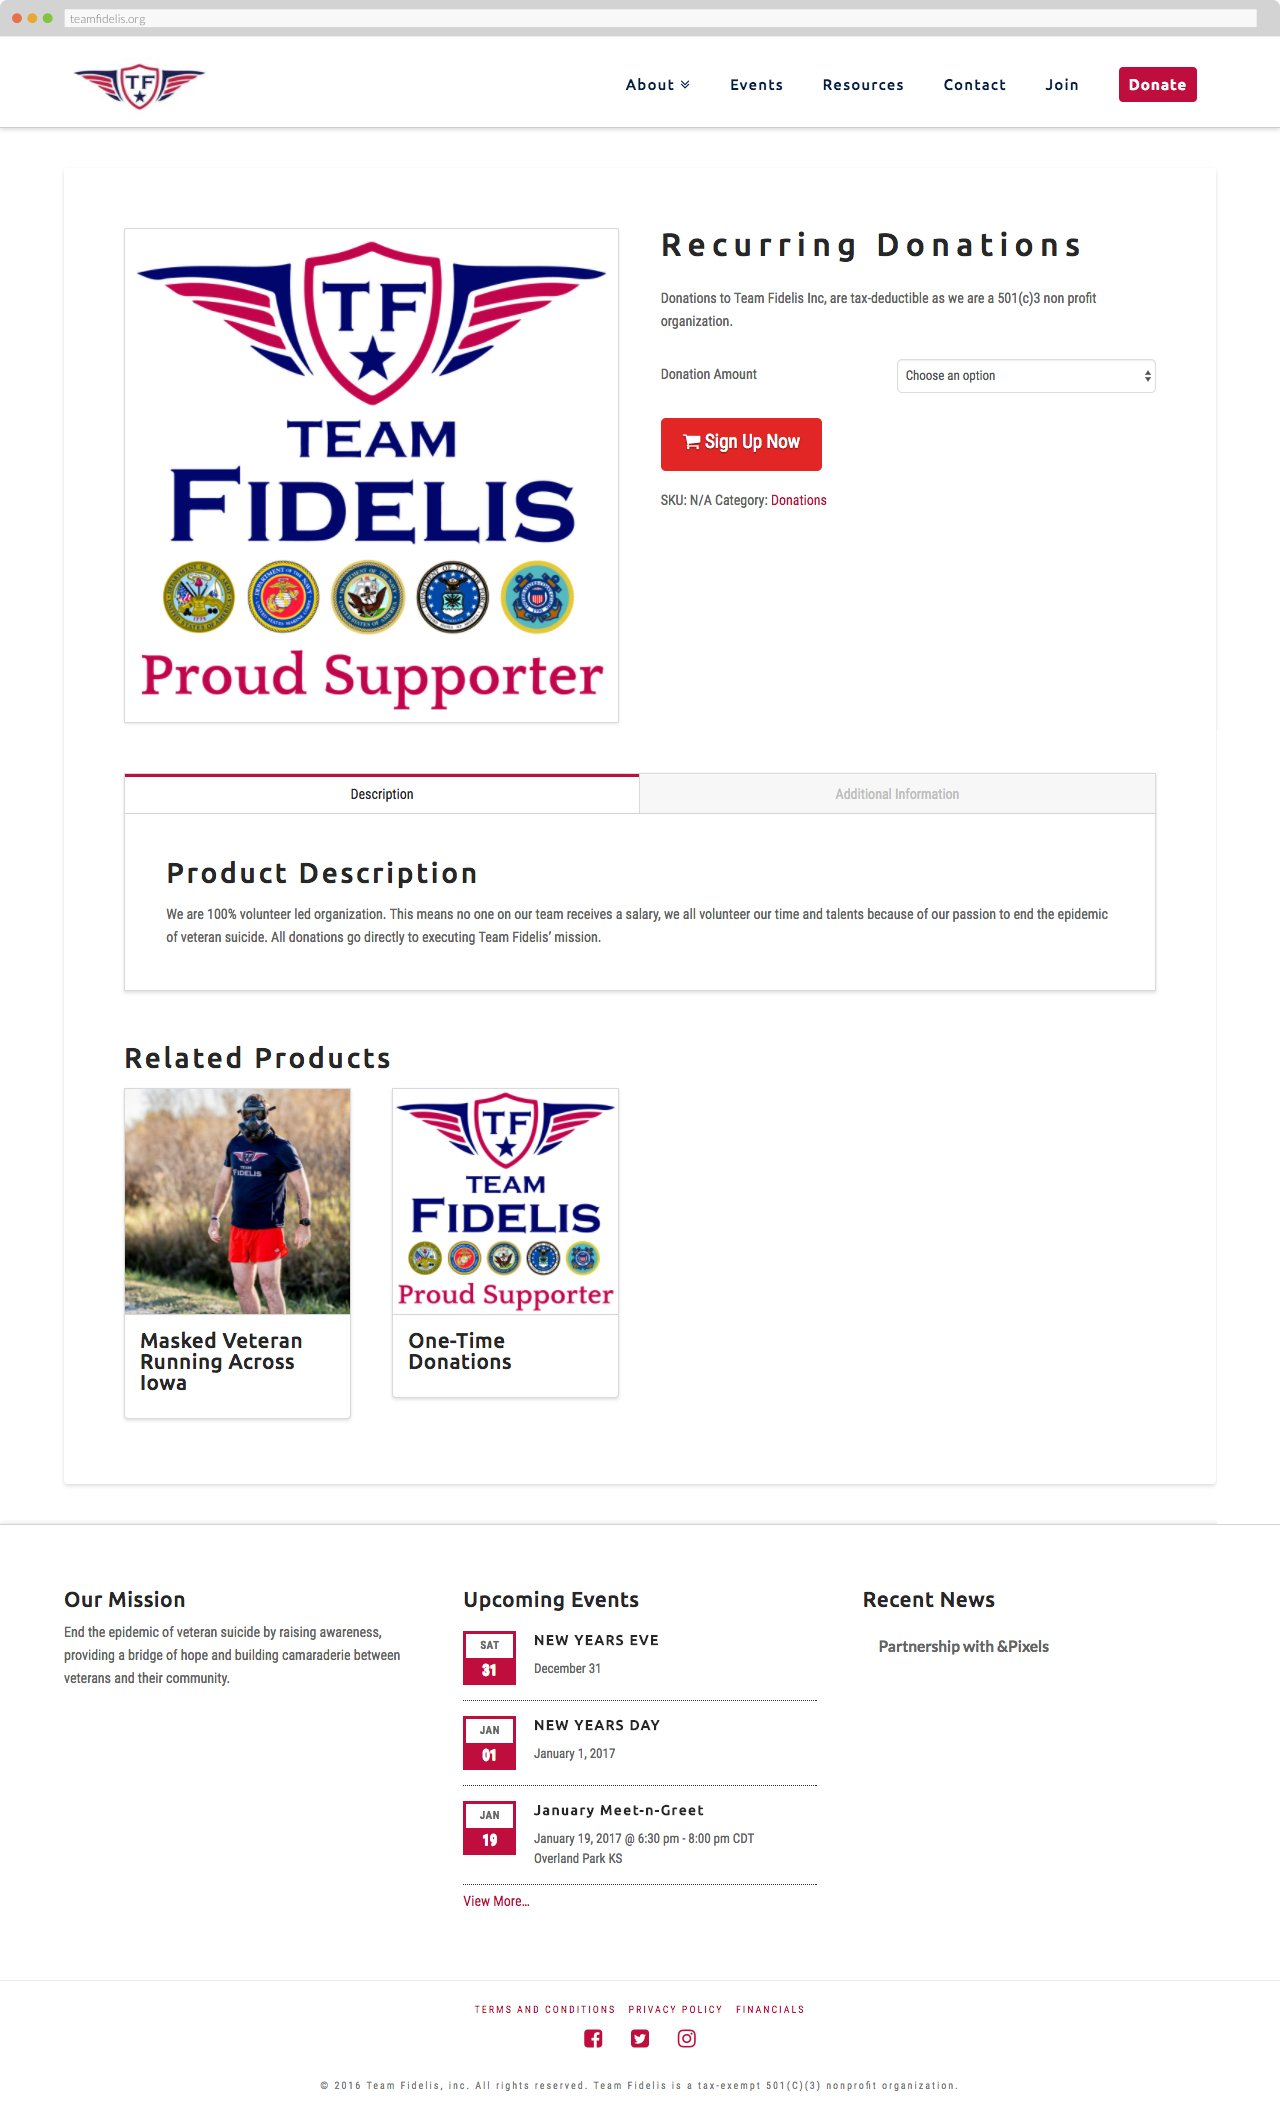 Team Fidelis - Recurring Donations